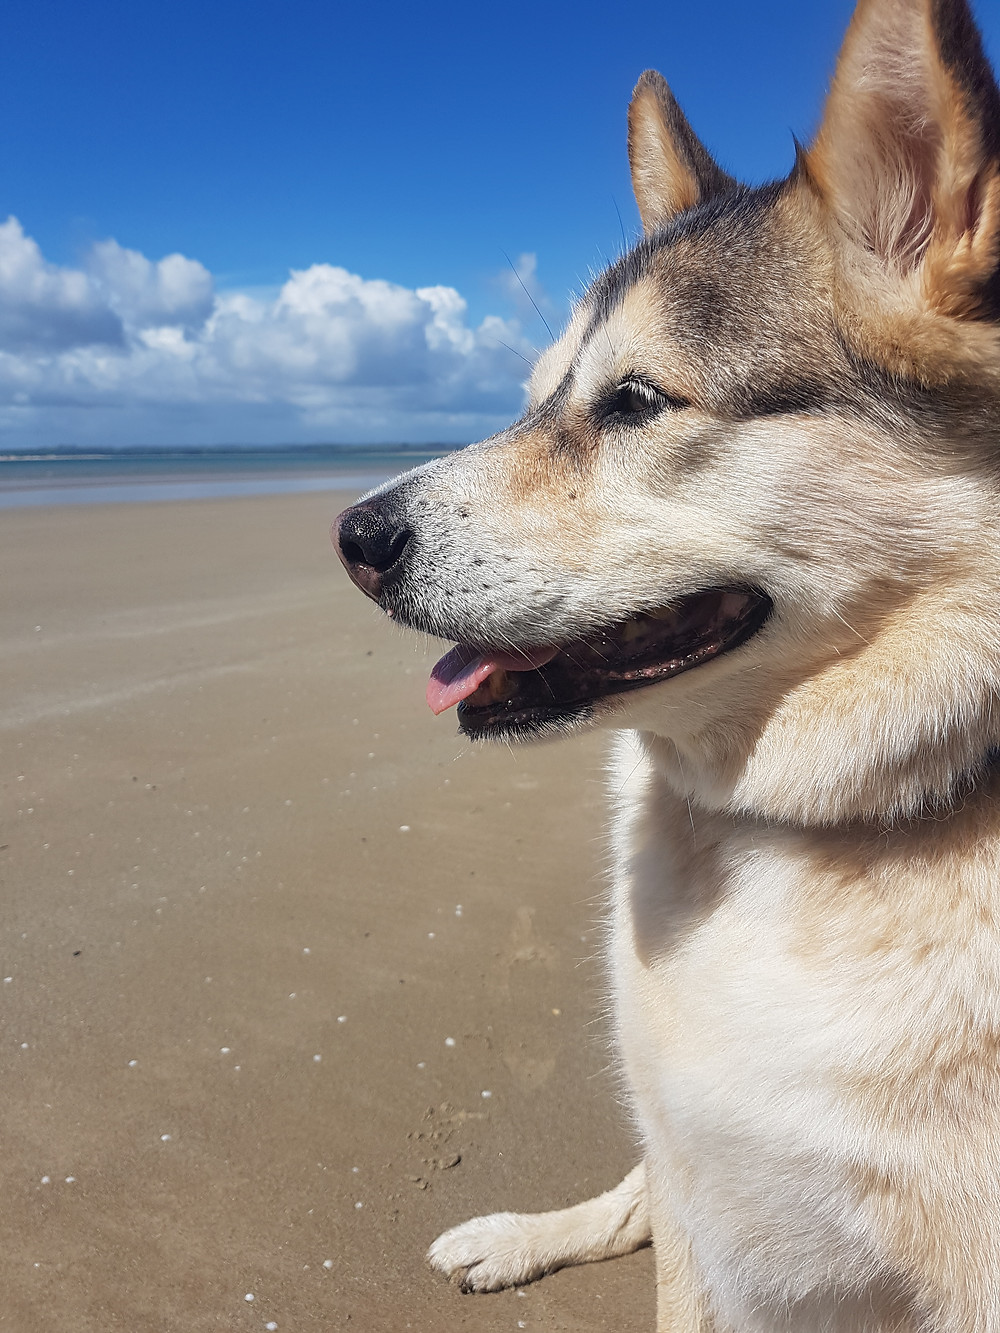 Cully, a 10 year old Malamute x Shepherd dog, sits in the sunshine looking over Stanley beach in Tasmania